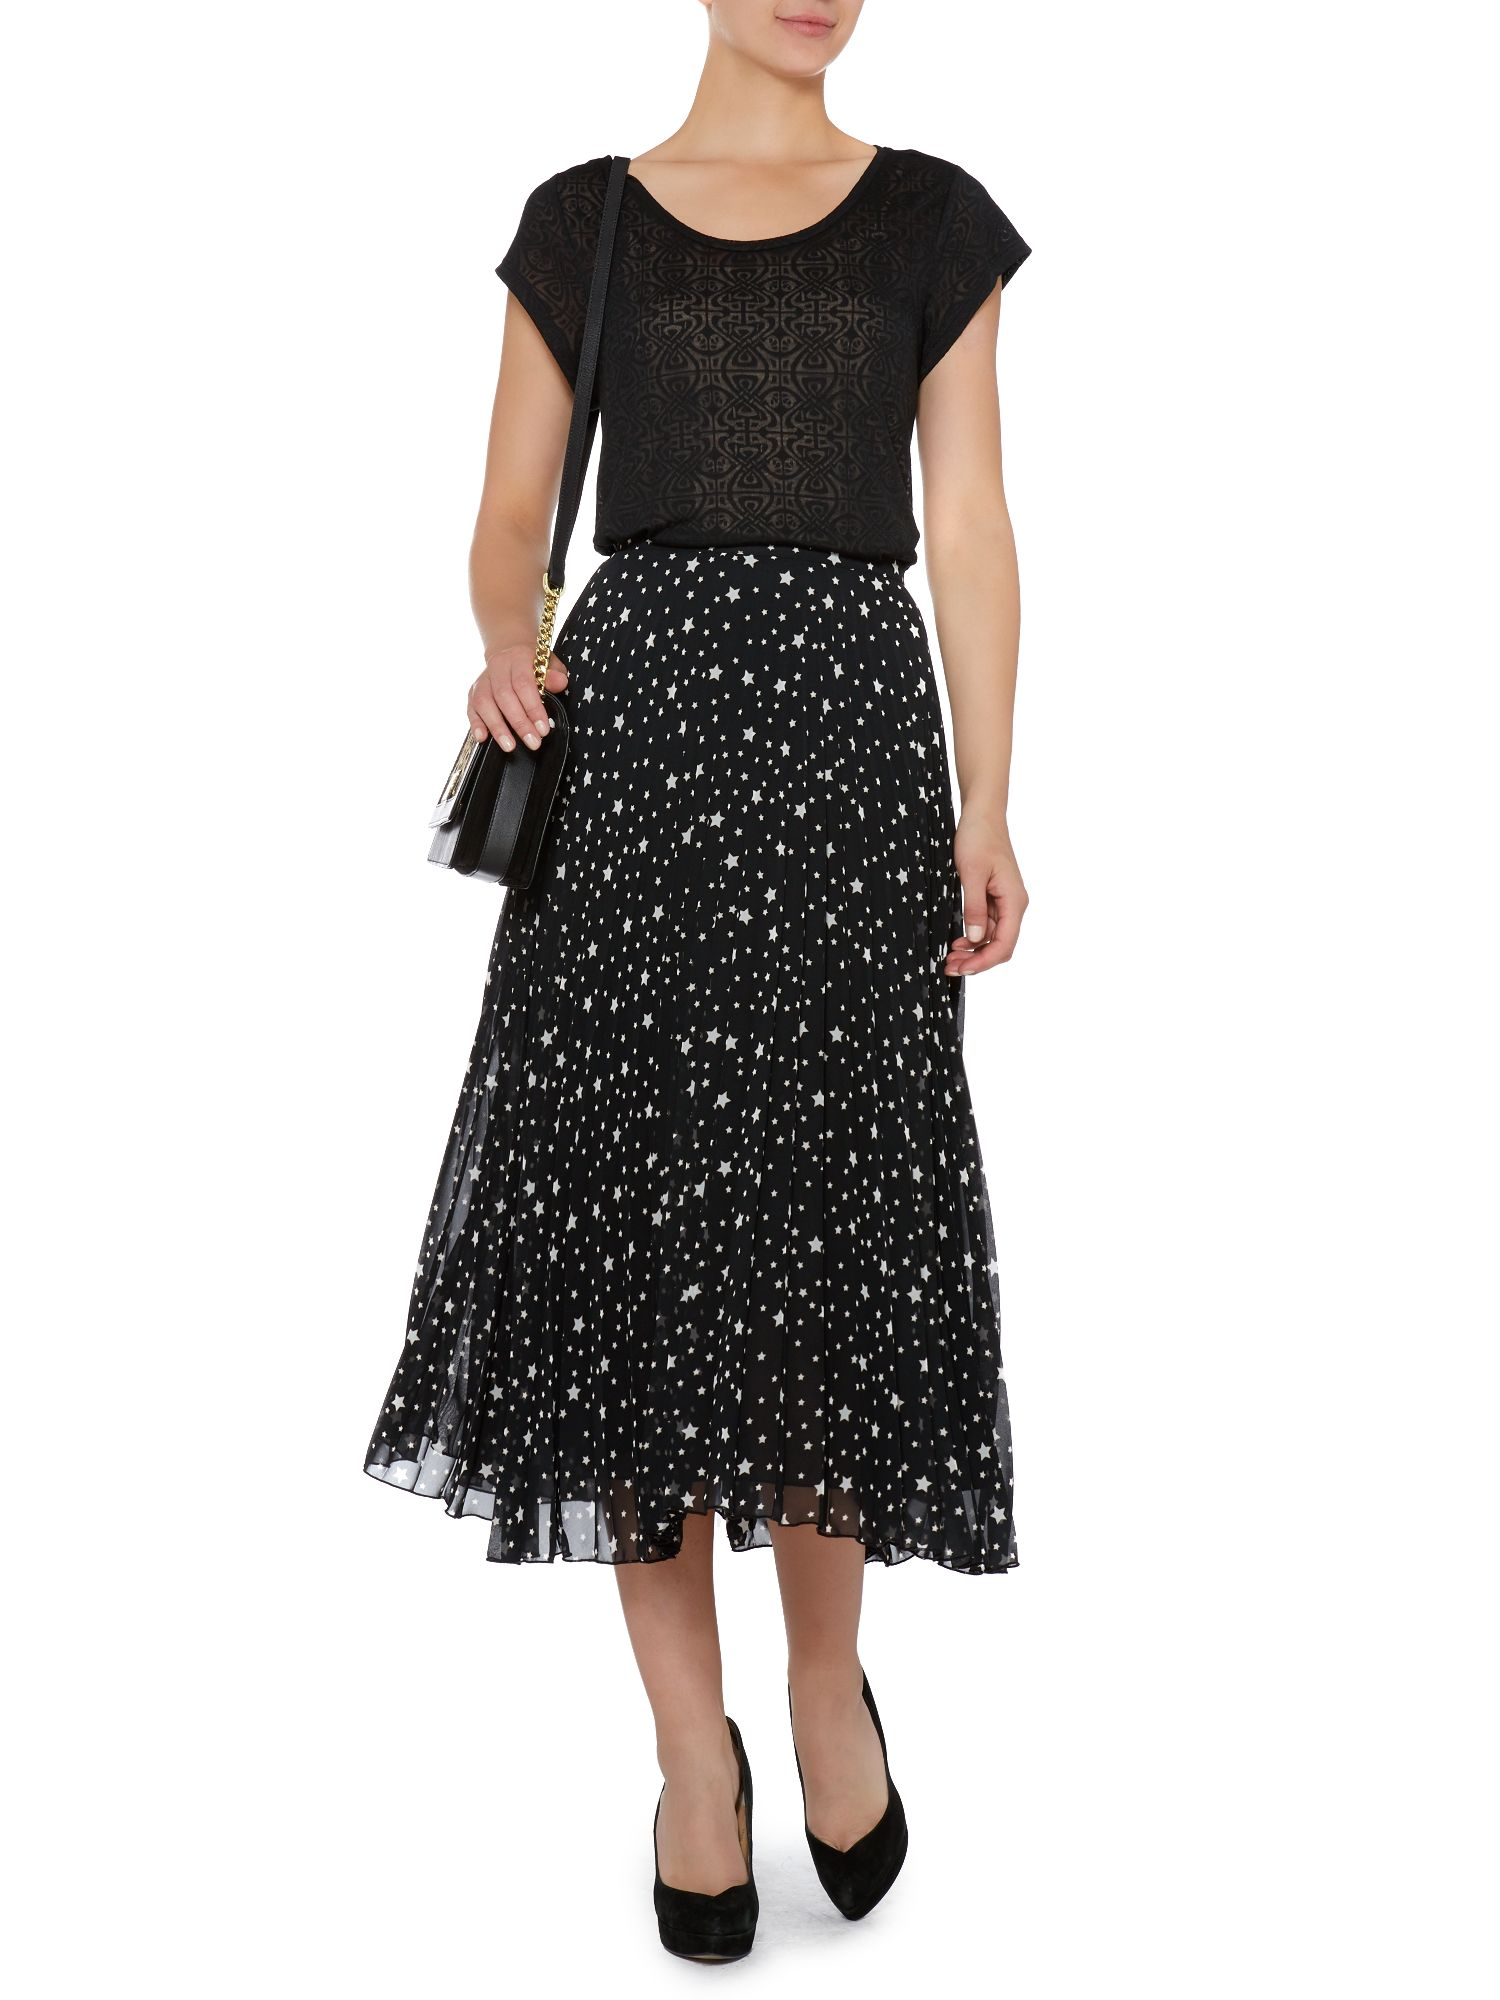 Star pleated midi skirt